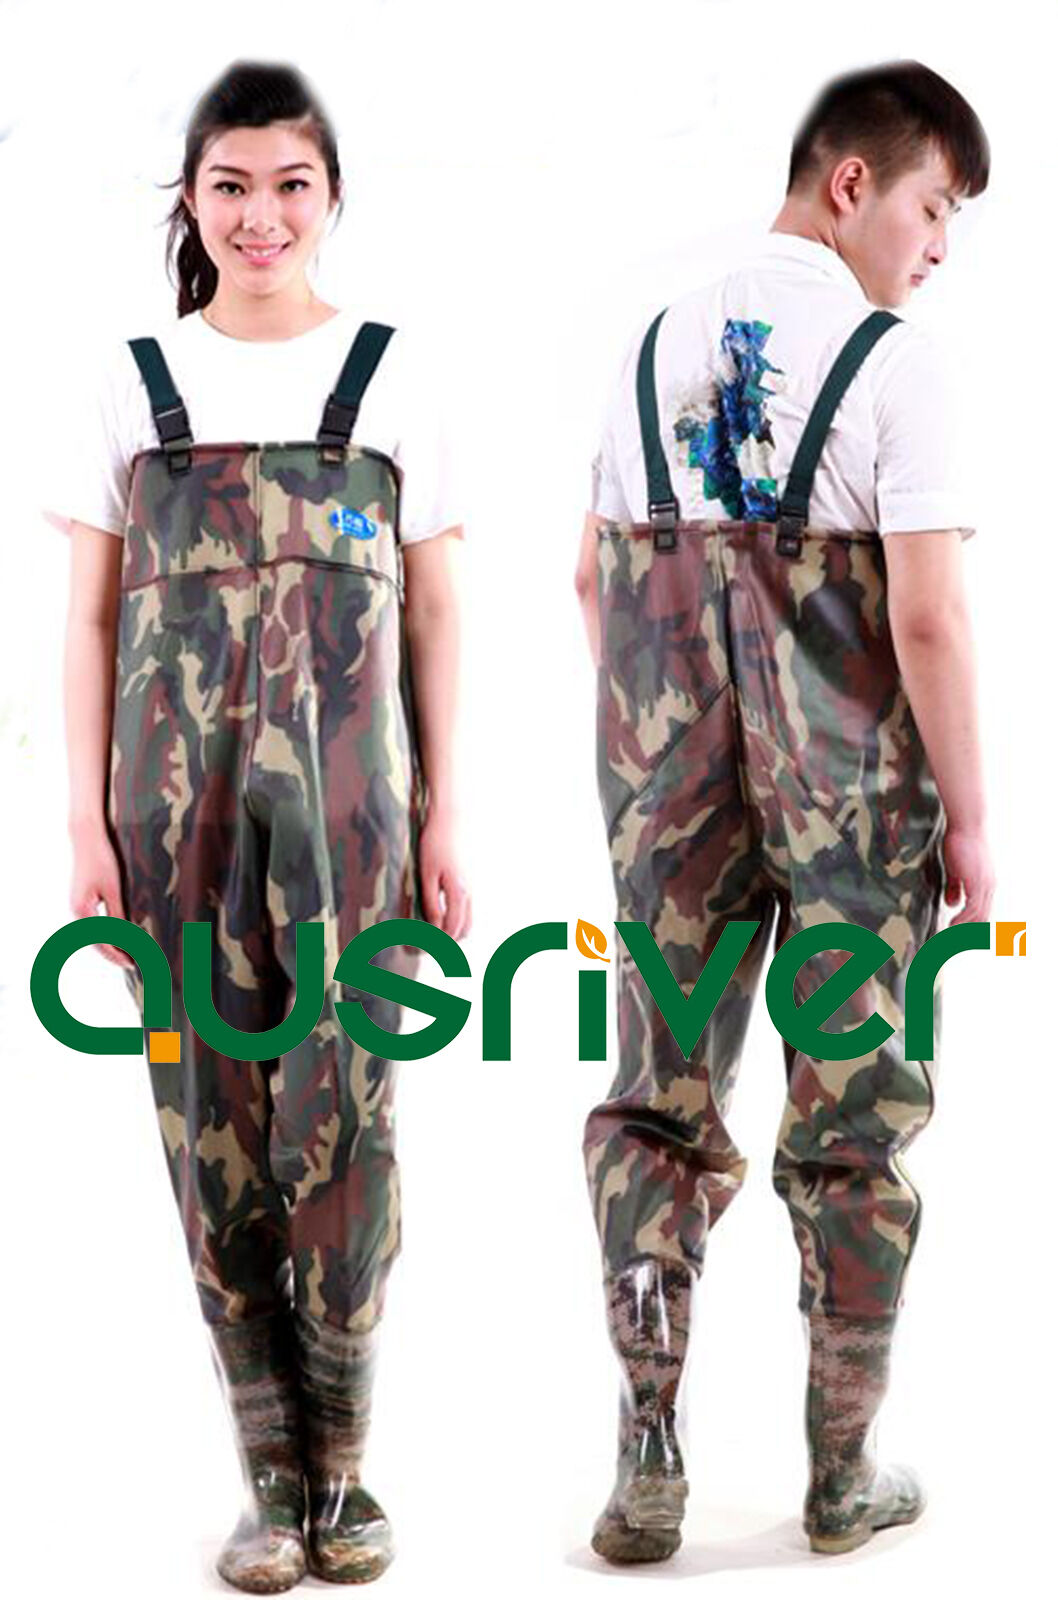 Premium Camo 0.75 PVC Glue Rubber  Chest Fishing Wader Waterproof Wader Boots  cheap in high quality